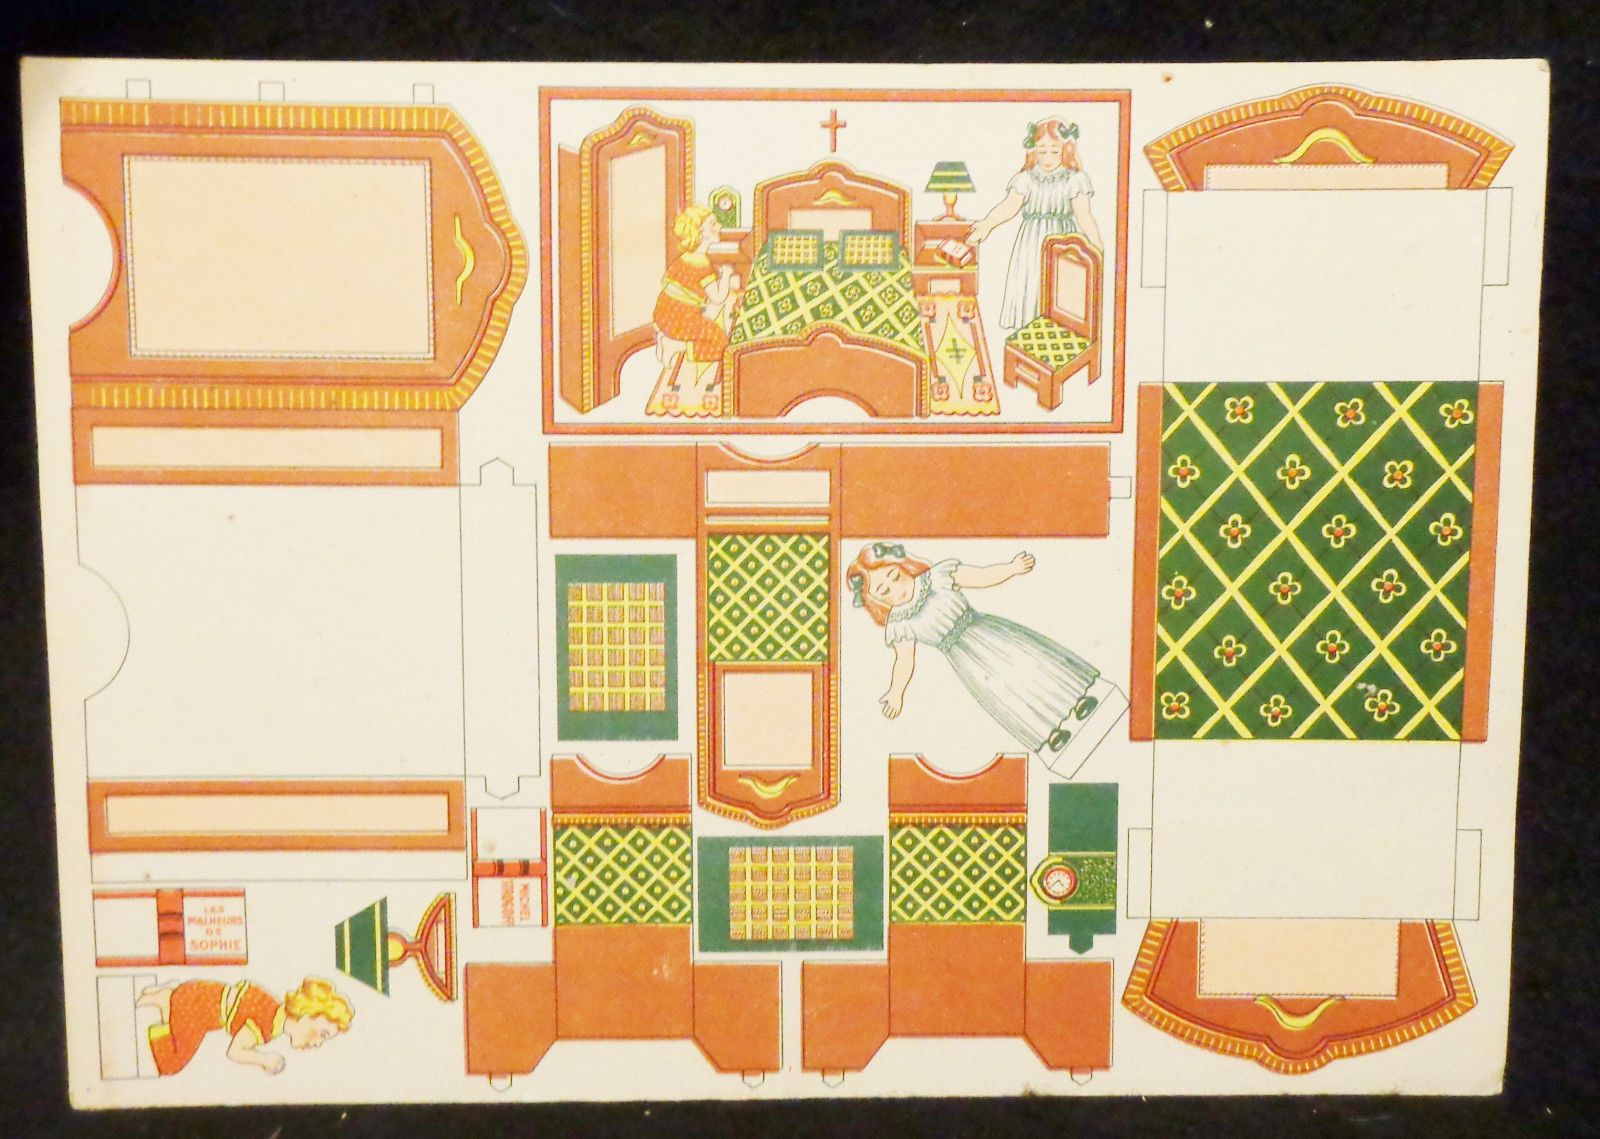 Strange Has Two Single Paper Dolls To Cut Out Has Furniture To Cut Interior Design Ideas Truasarkarijobsexamcom